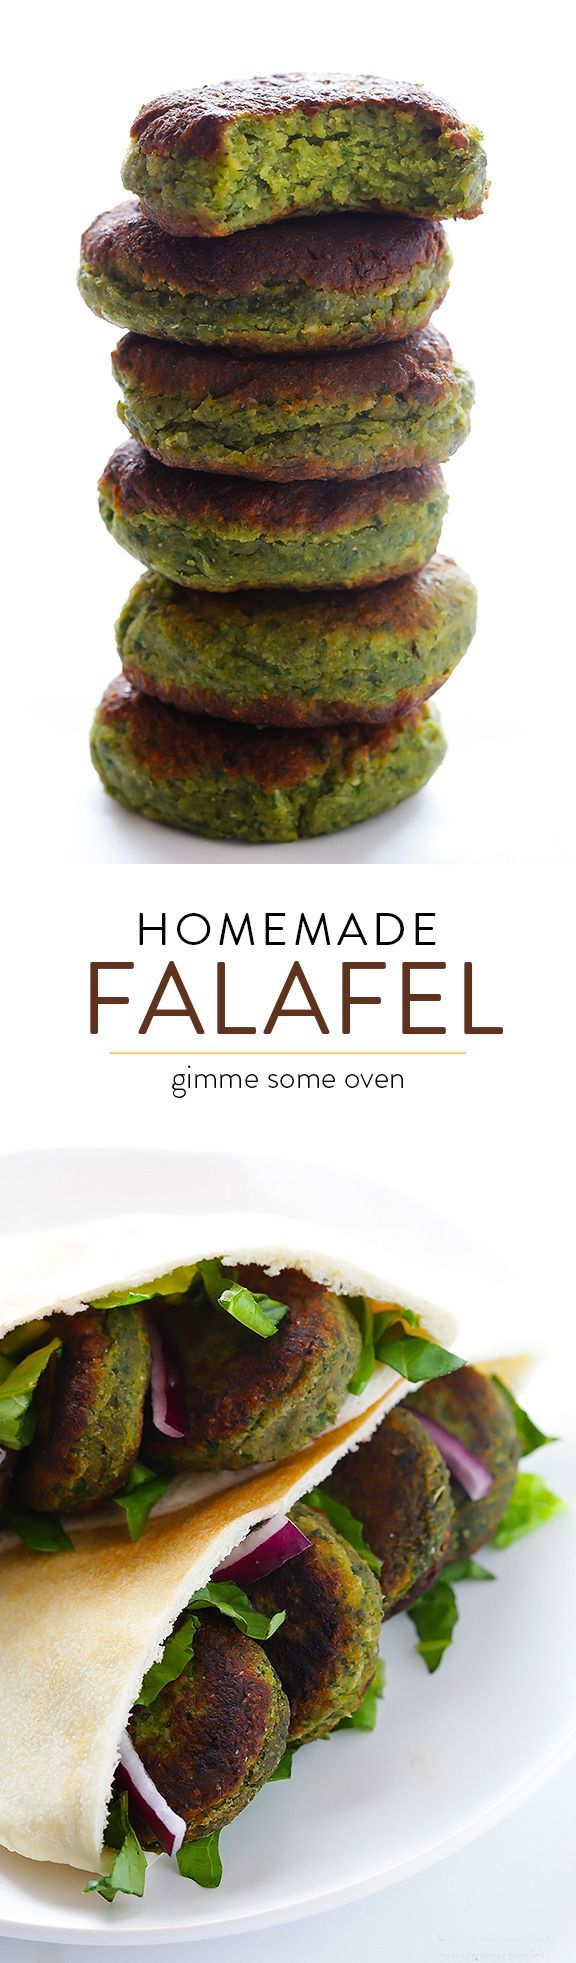 Looking at a new diet plan for the new year? Why not try falafel… it's #vegetarian and deliciously #healthy!